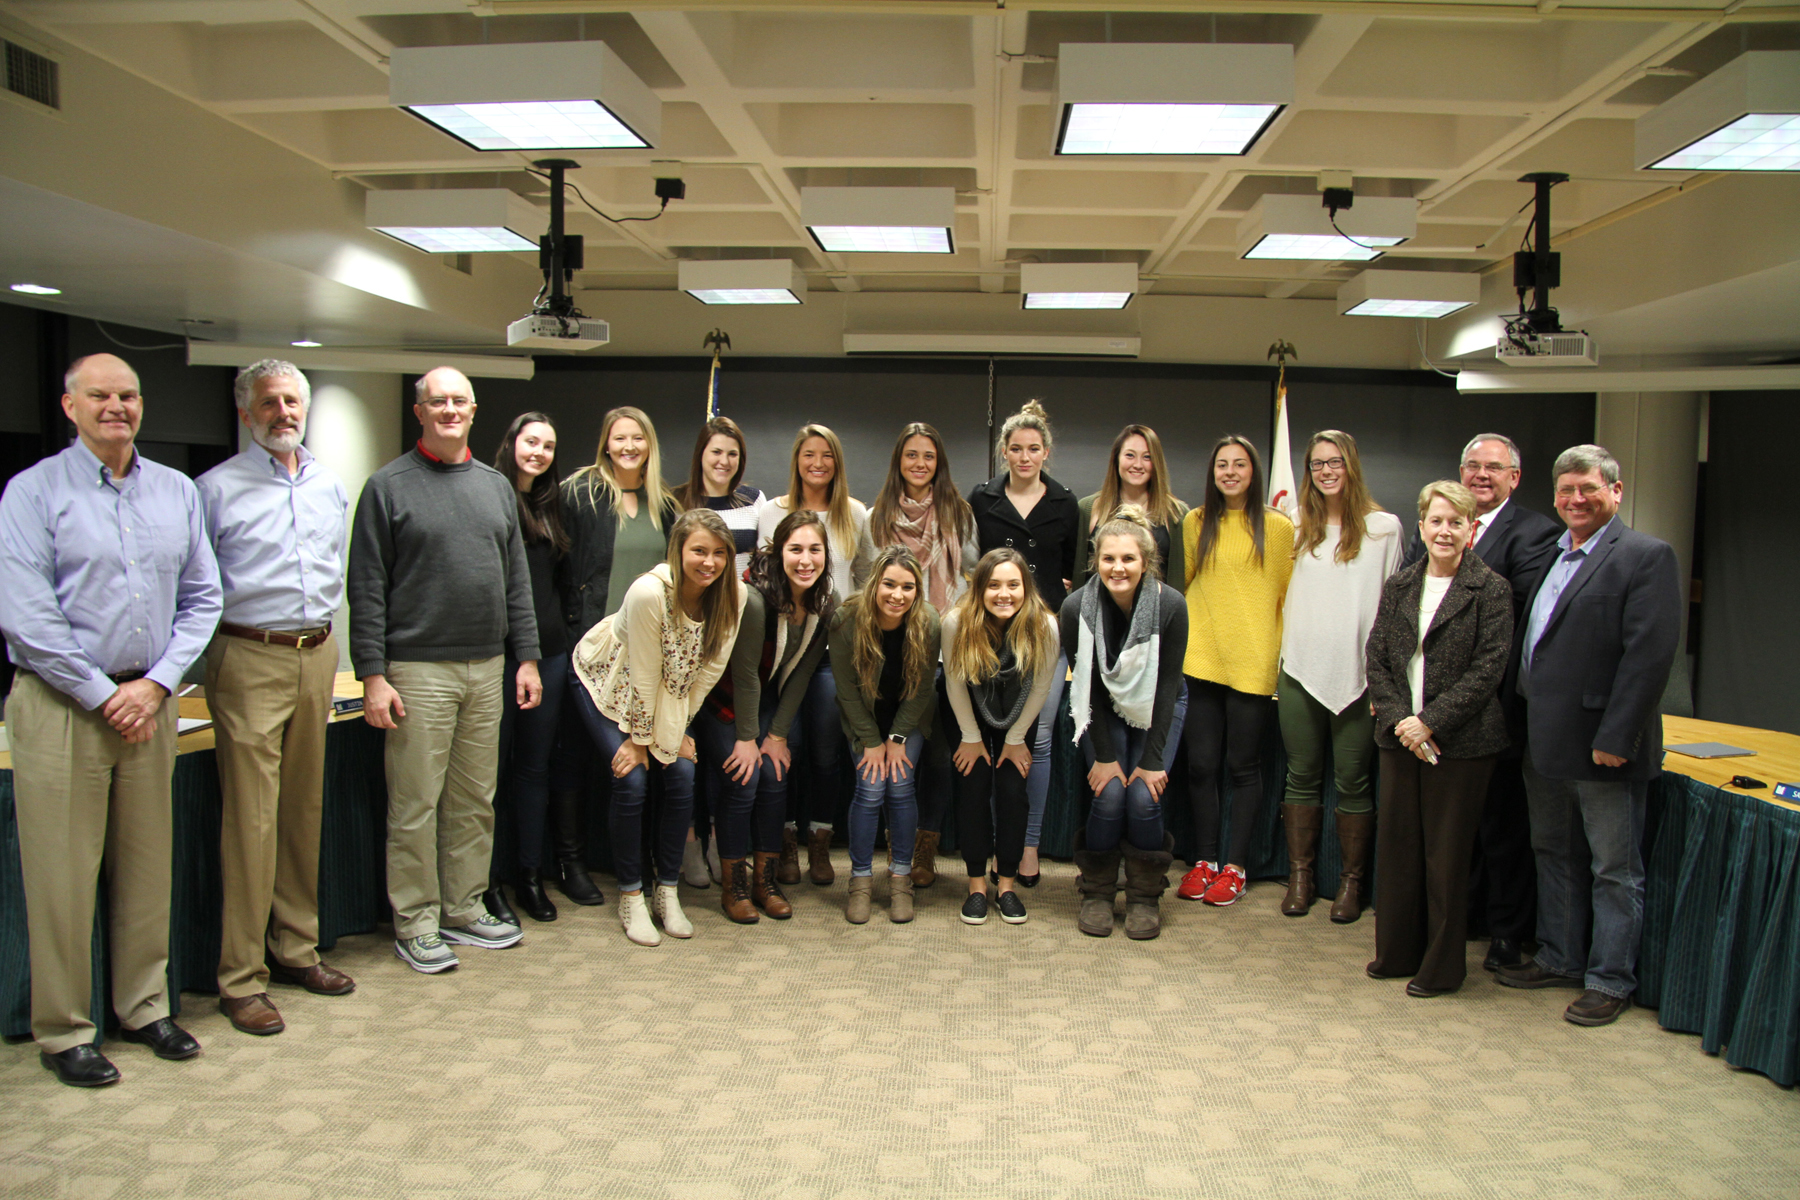 LLCC volleyball team at board meeting